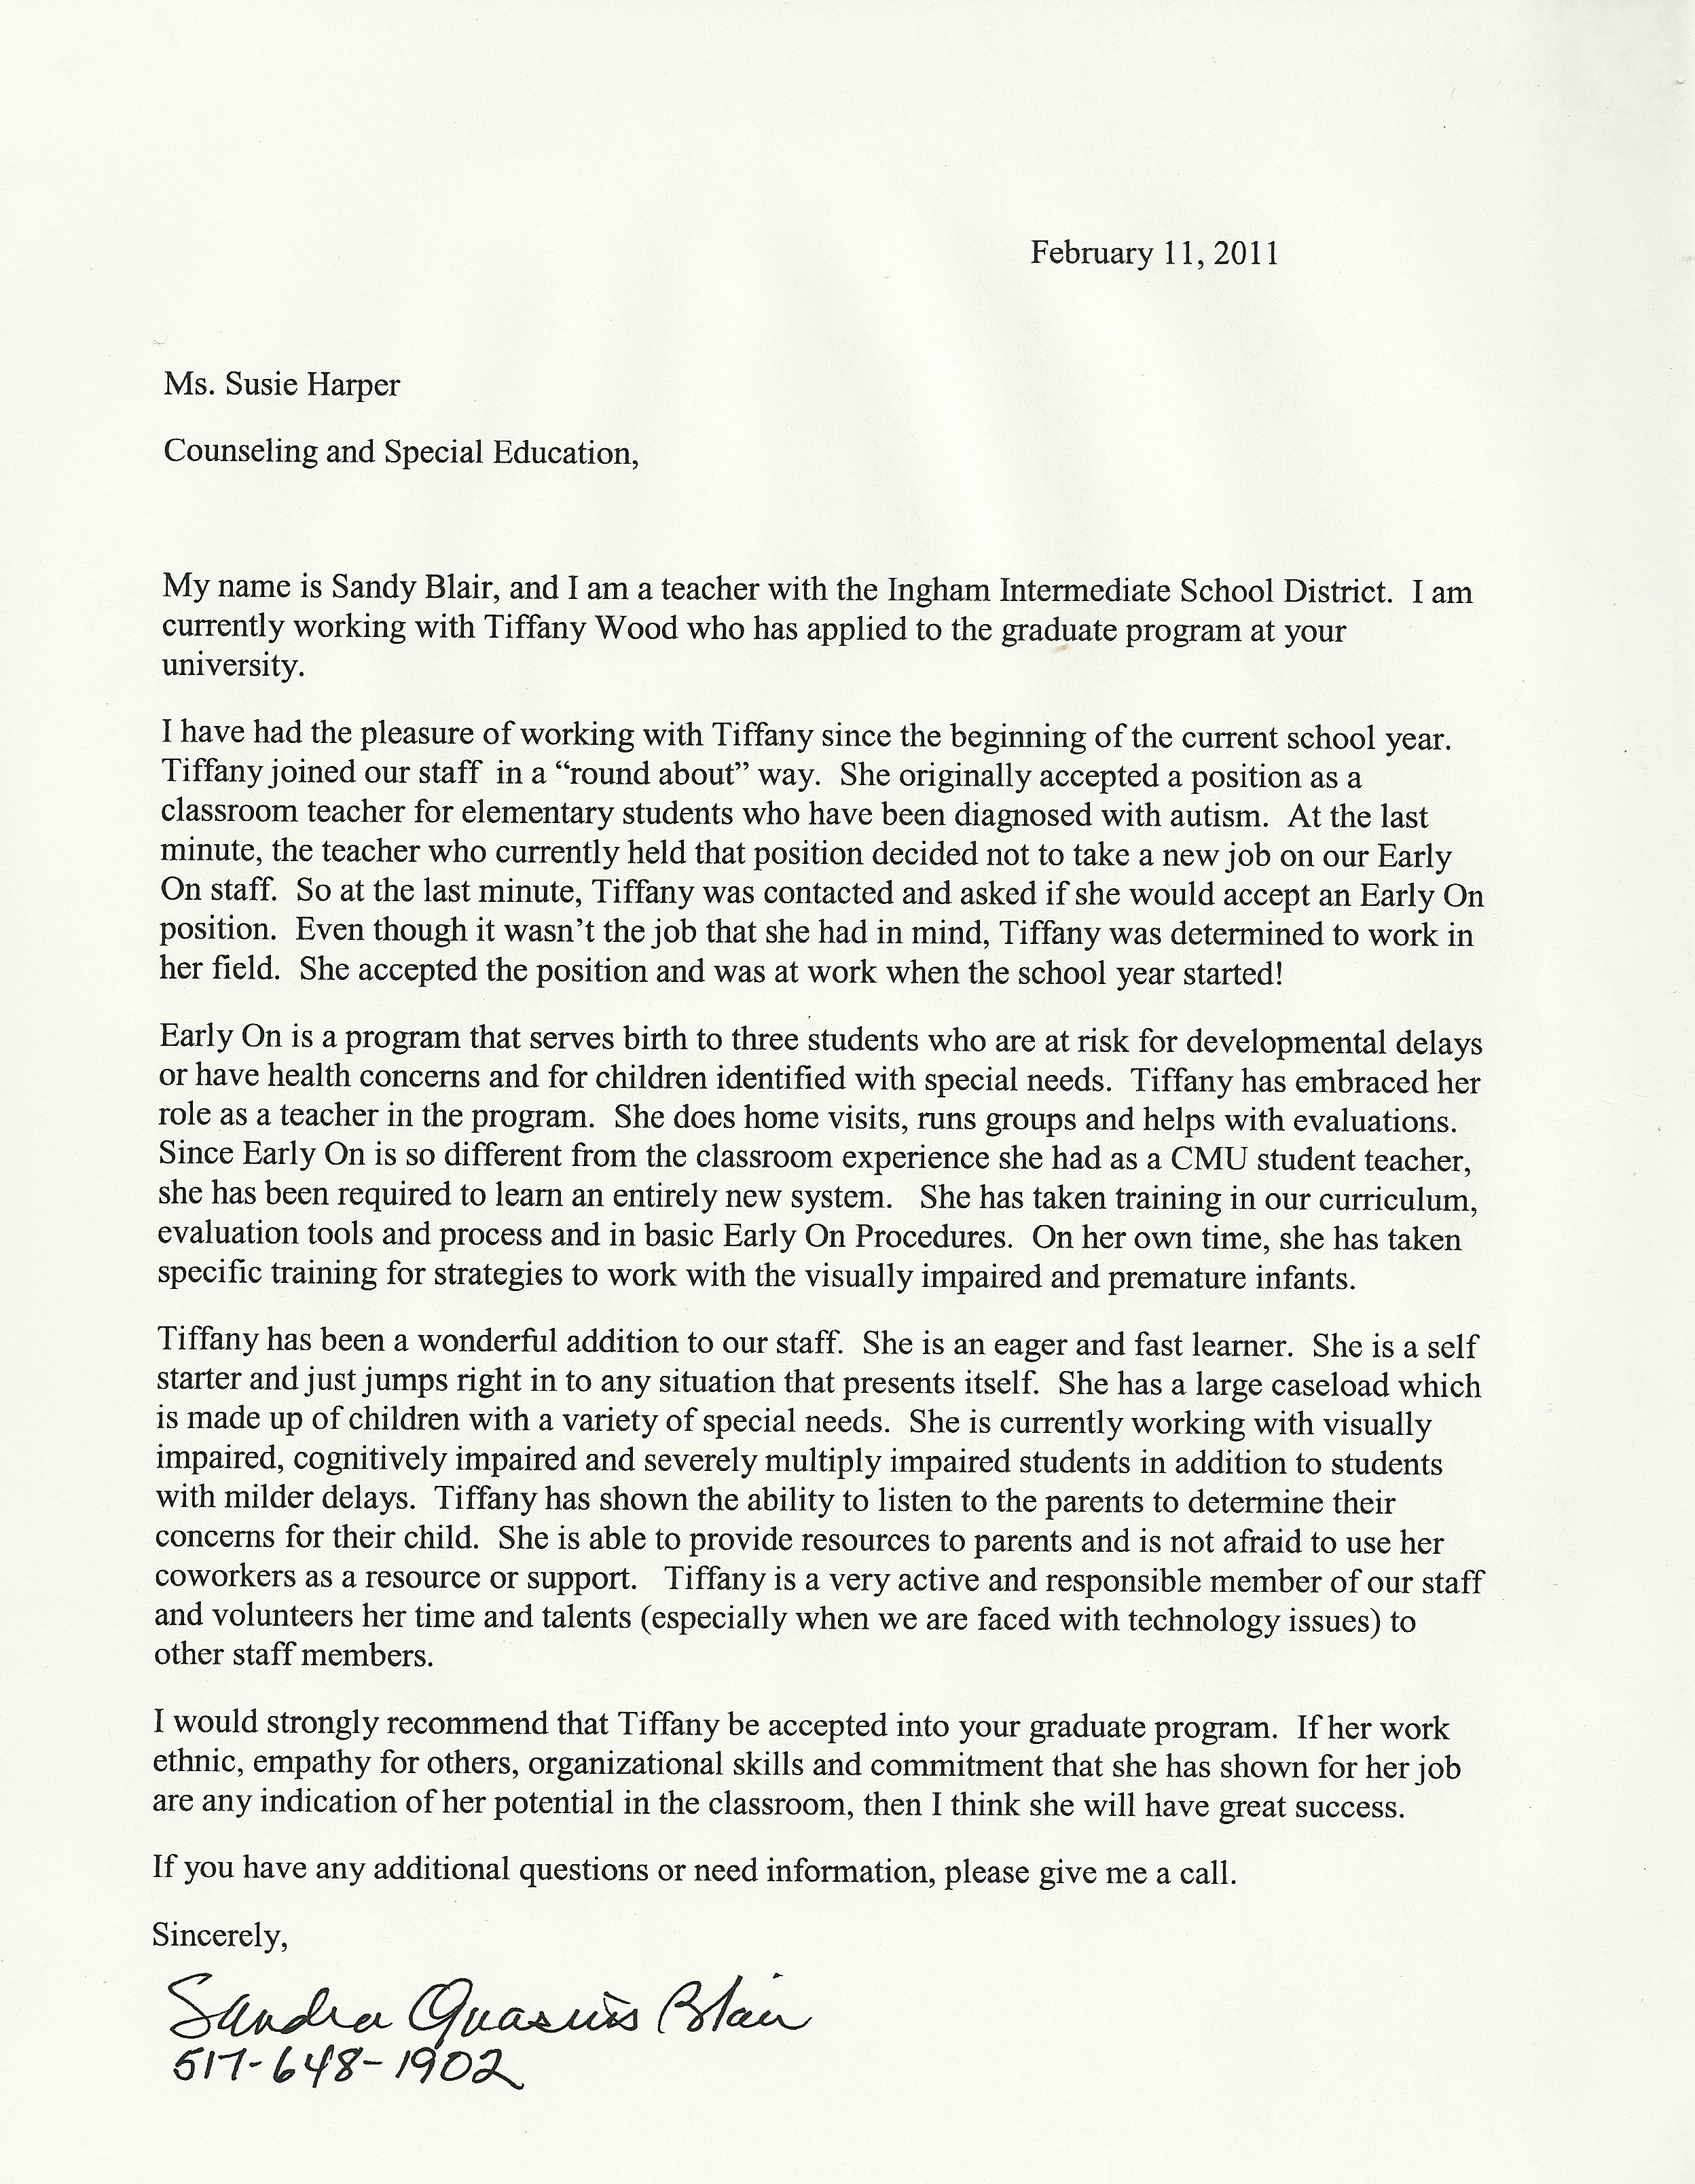 Letter of Recommendation for graduate school- Blair | Tiffany Wood's